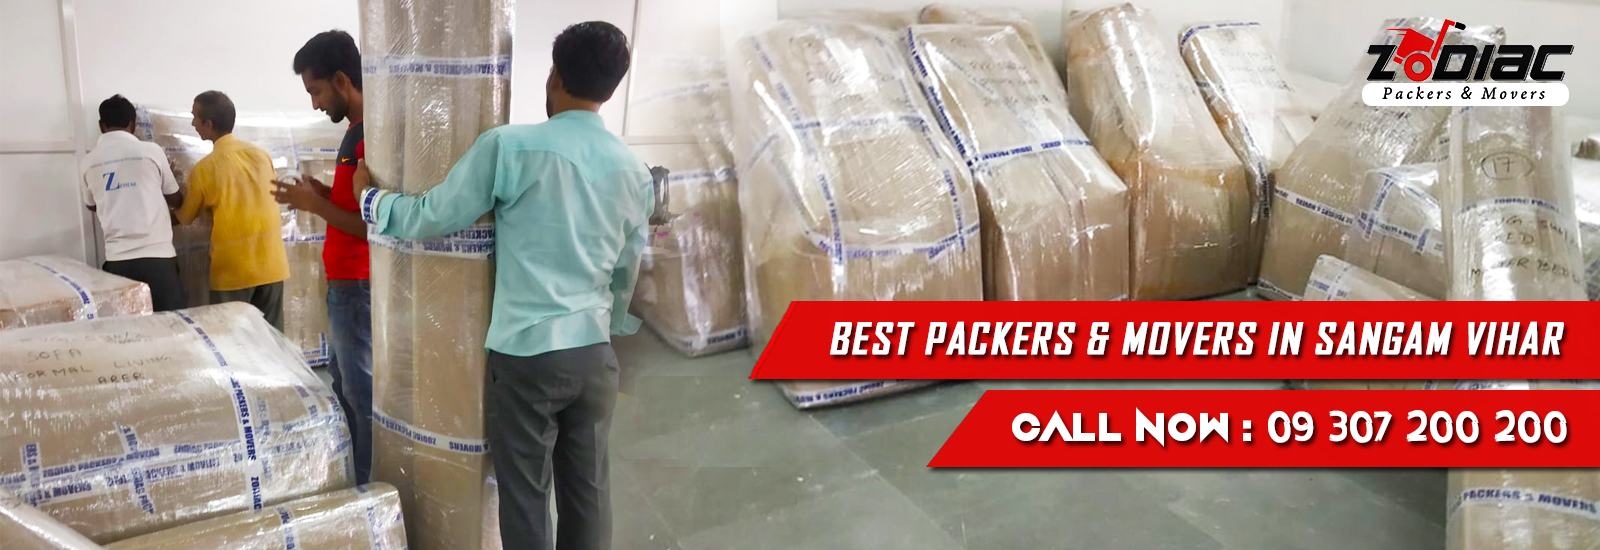 Packers and Movers in Sangam Vihar